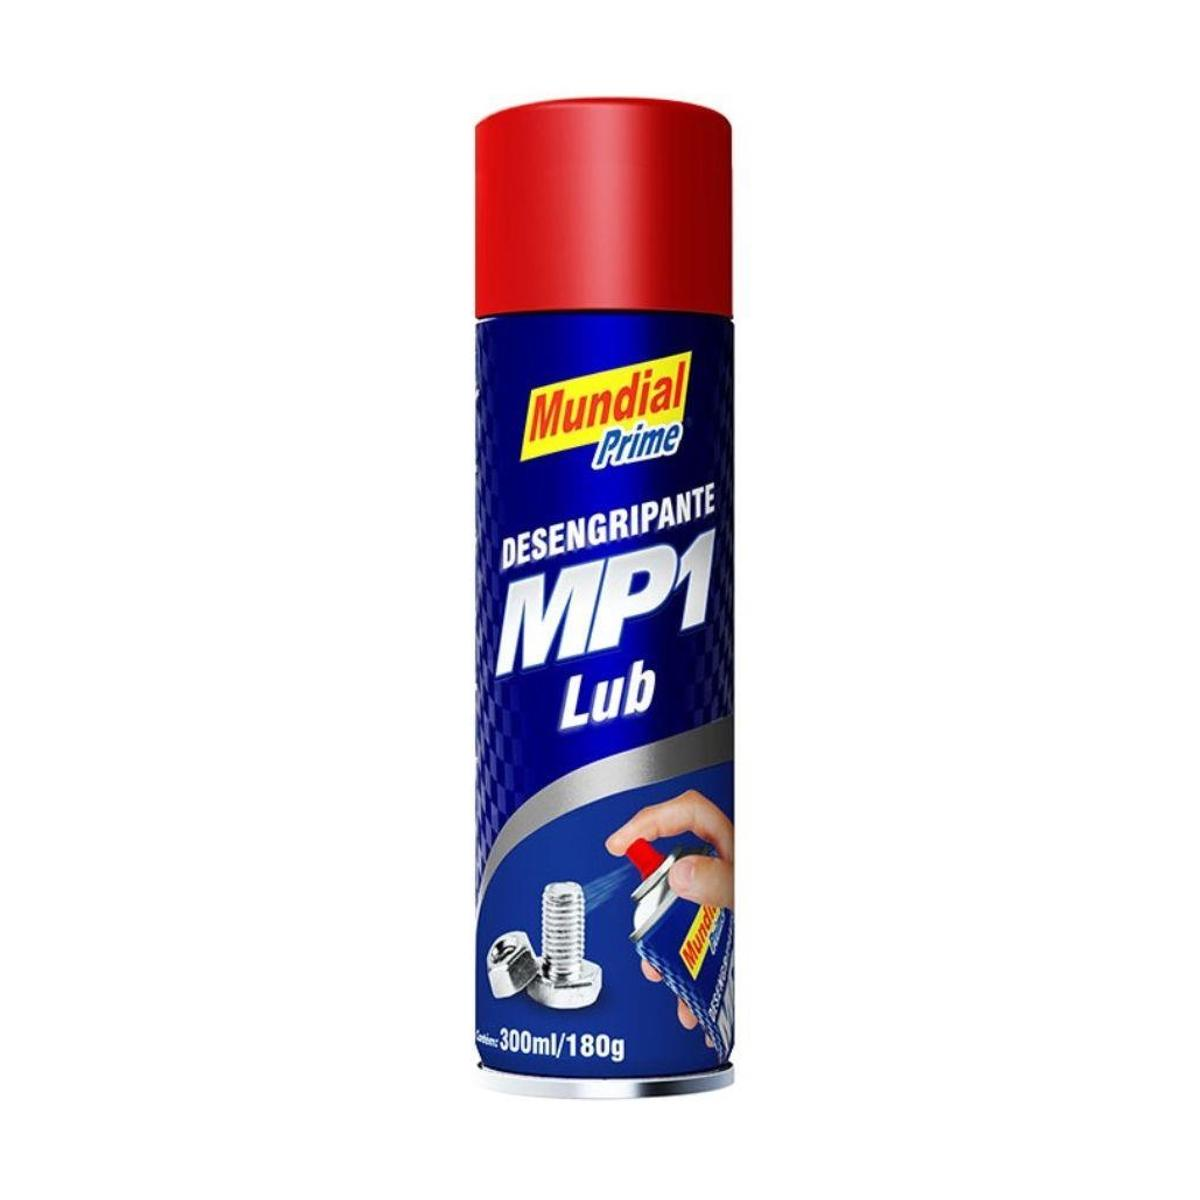 Spray Desengripante MP1 Lub 300ml/180g